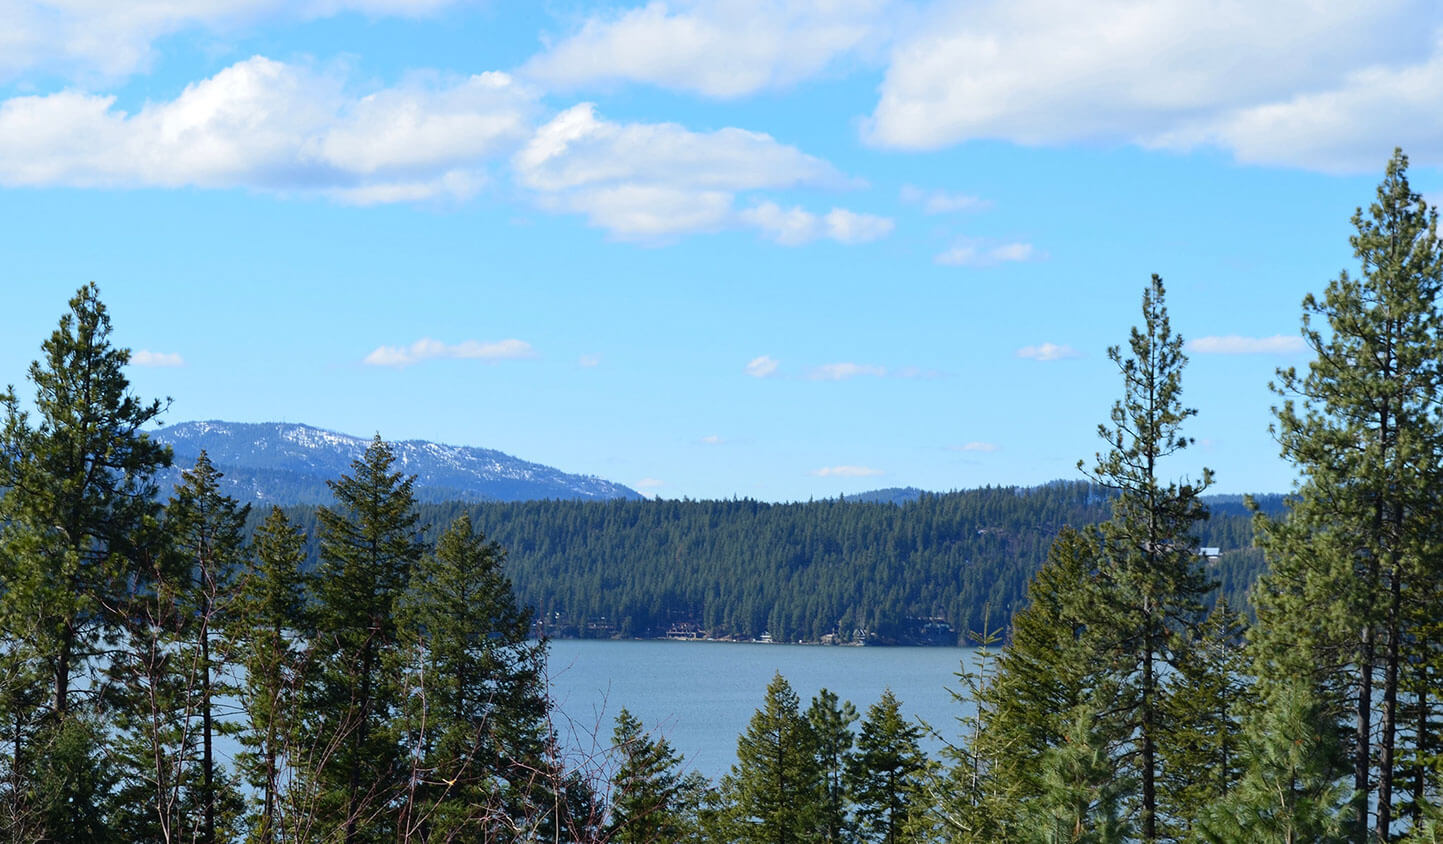 lot 3 view 2 | The Preserve at Gotham Bay | Coeur d'Alene, Idaho